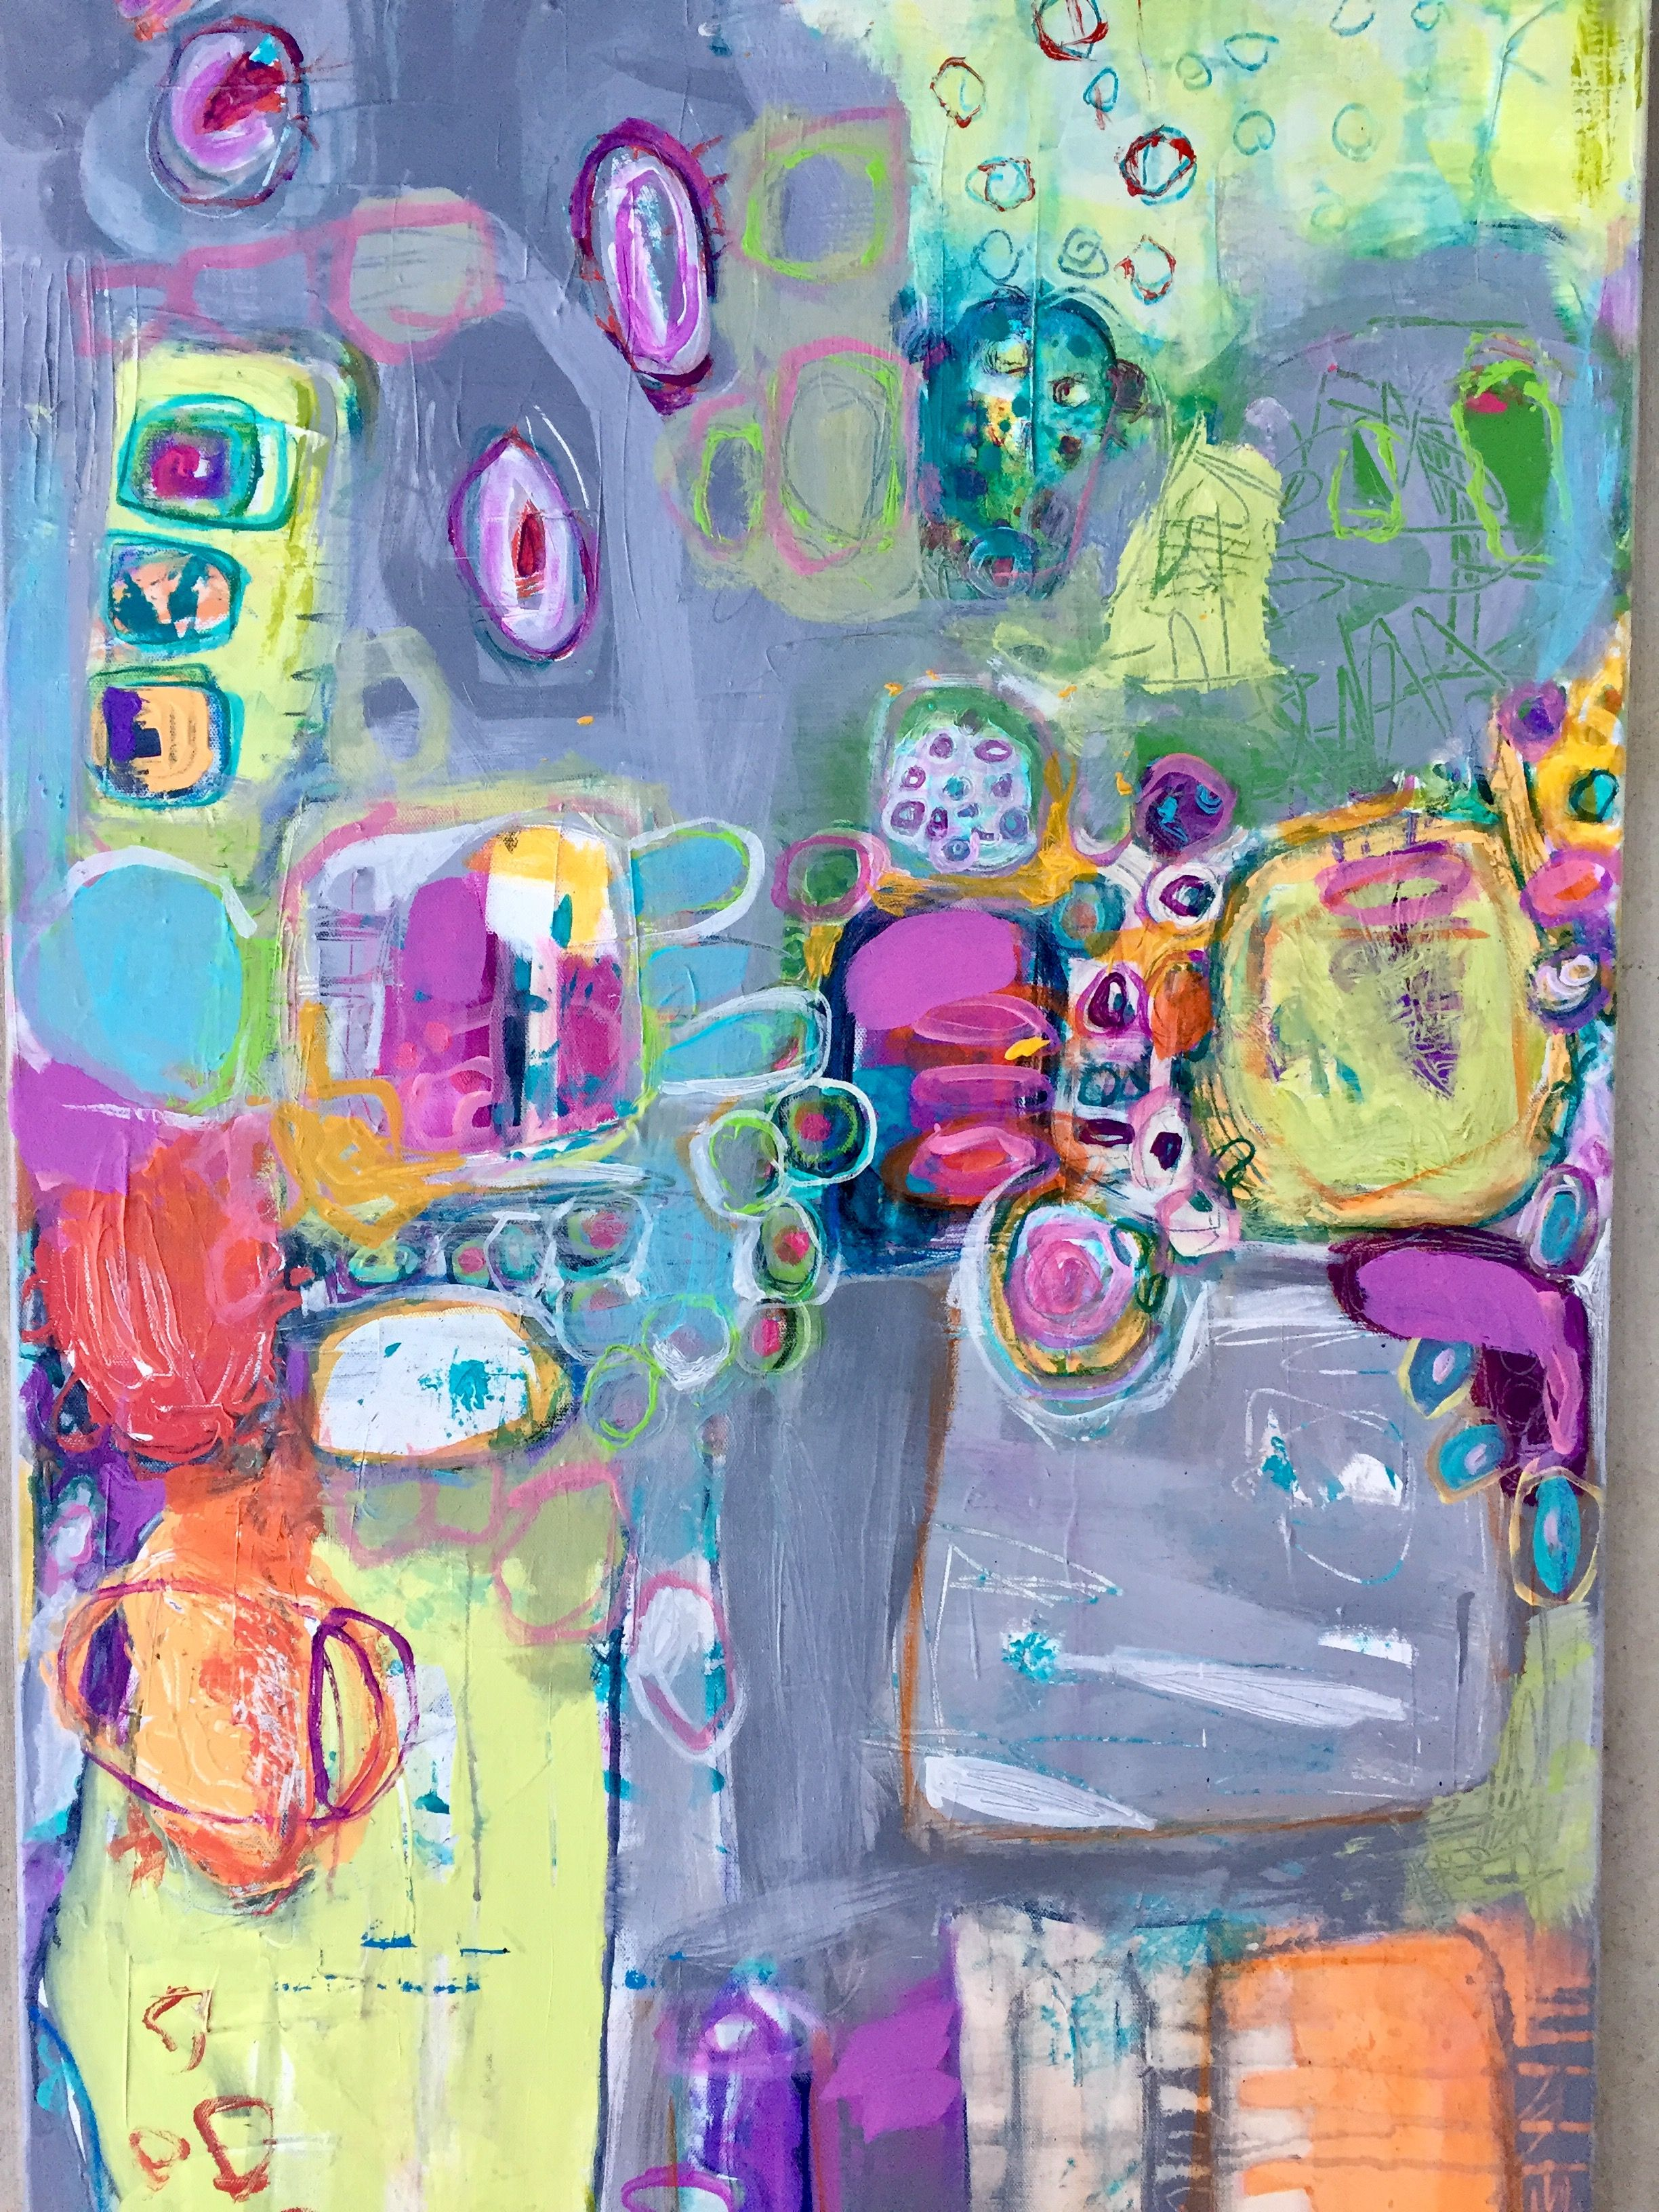 OH JOY 24x48 acrylic on canvas margotrowan.com | Artist Crush ...